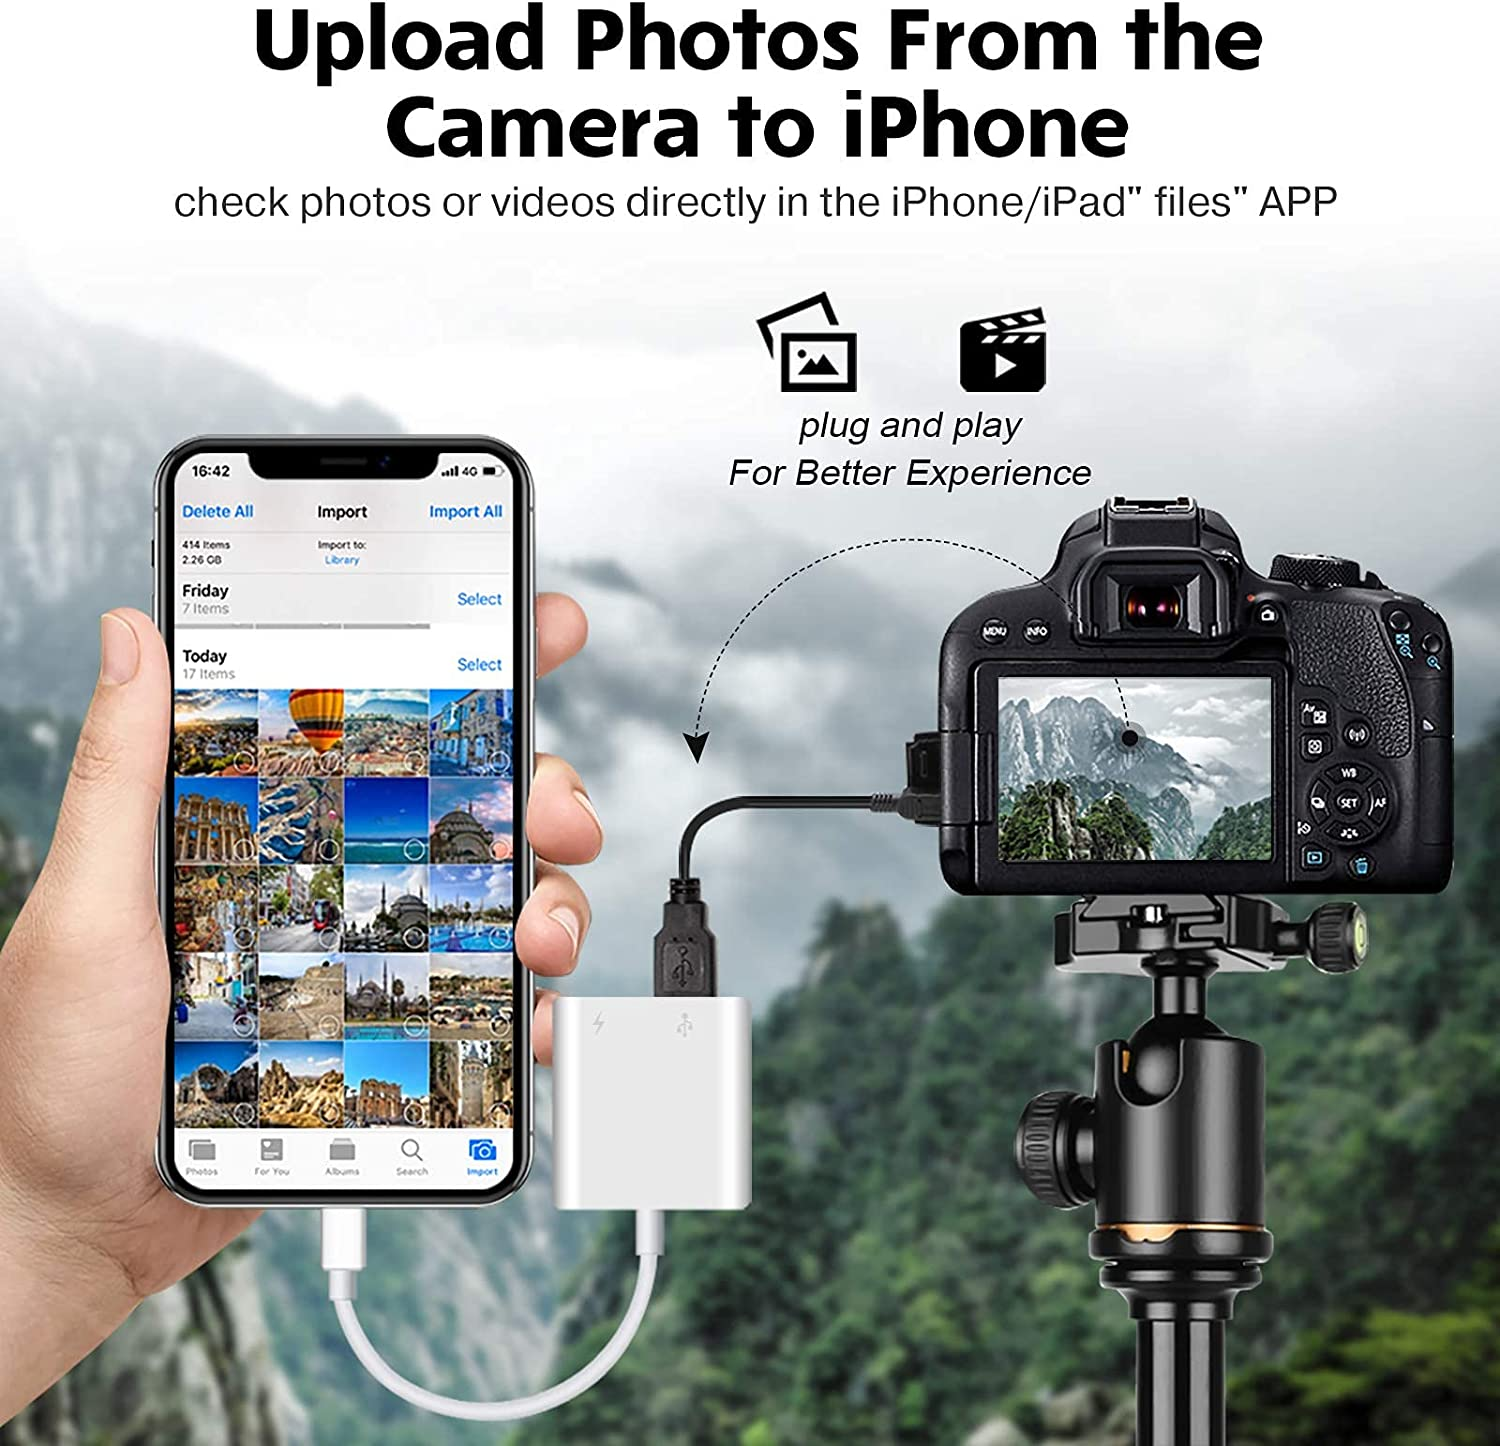 USB Camera Adapter, USB Female OTG Adapter Compatible with iPhone iPad, Portable USB Adapter for iPhone with Charging Port, No Application, Plug and Play